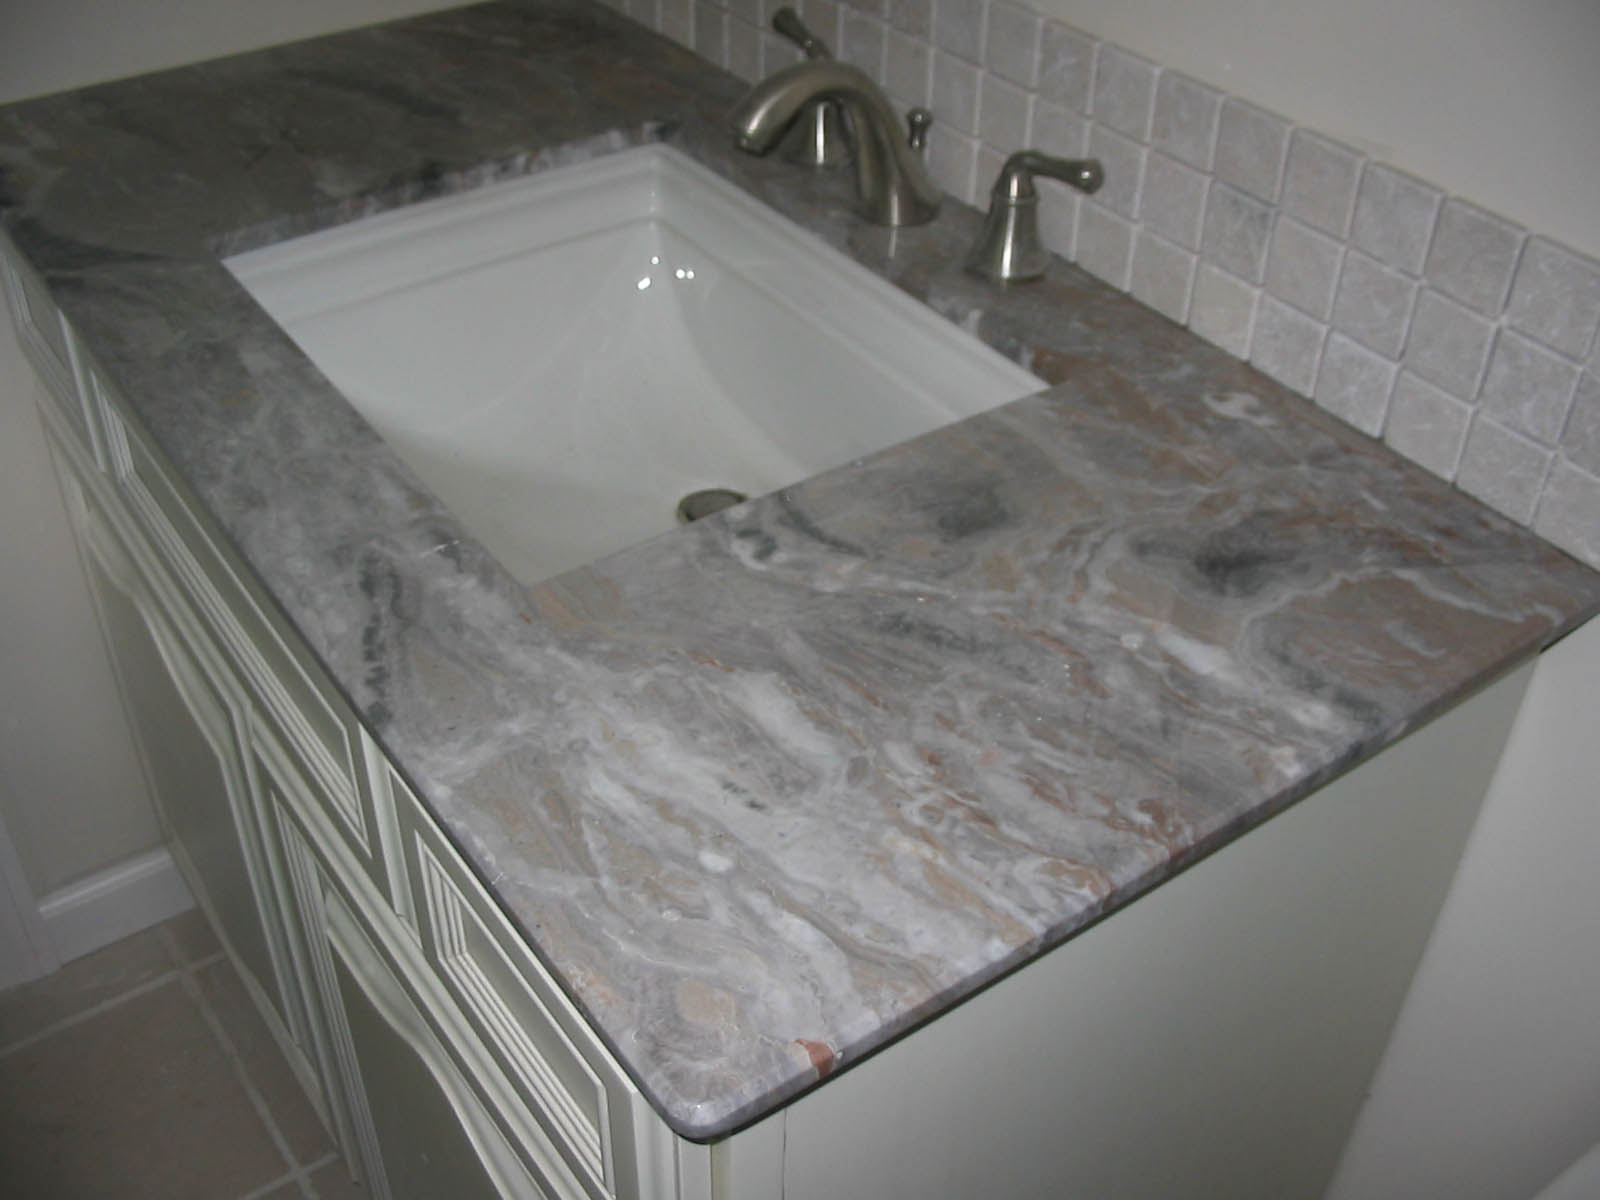 tops lesscare vanitytops model x vanity bathroom spread top granitetops catalog wheat granite